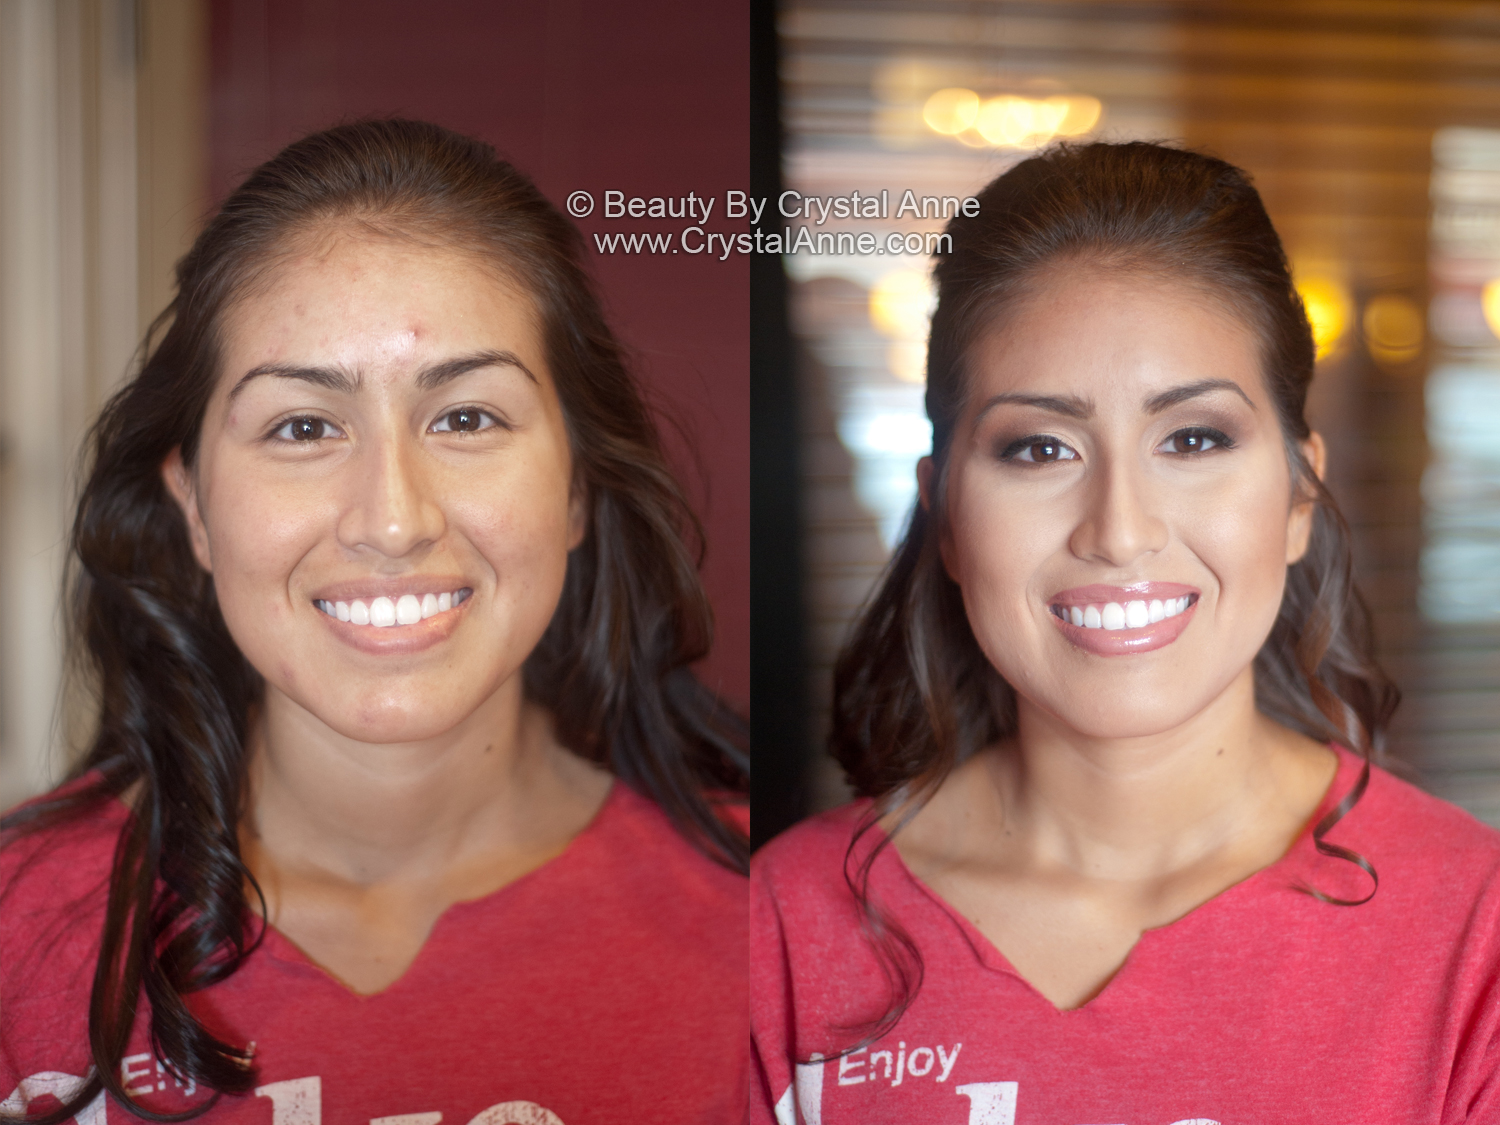 Hair And Makeup For Prom In Cypress Tx Houston Hair Extensions